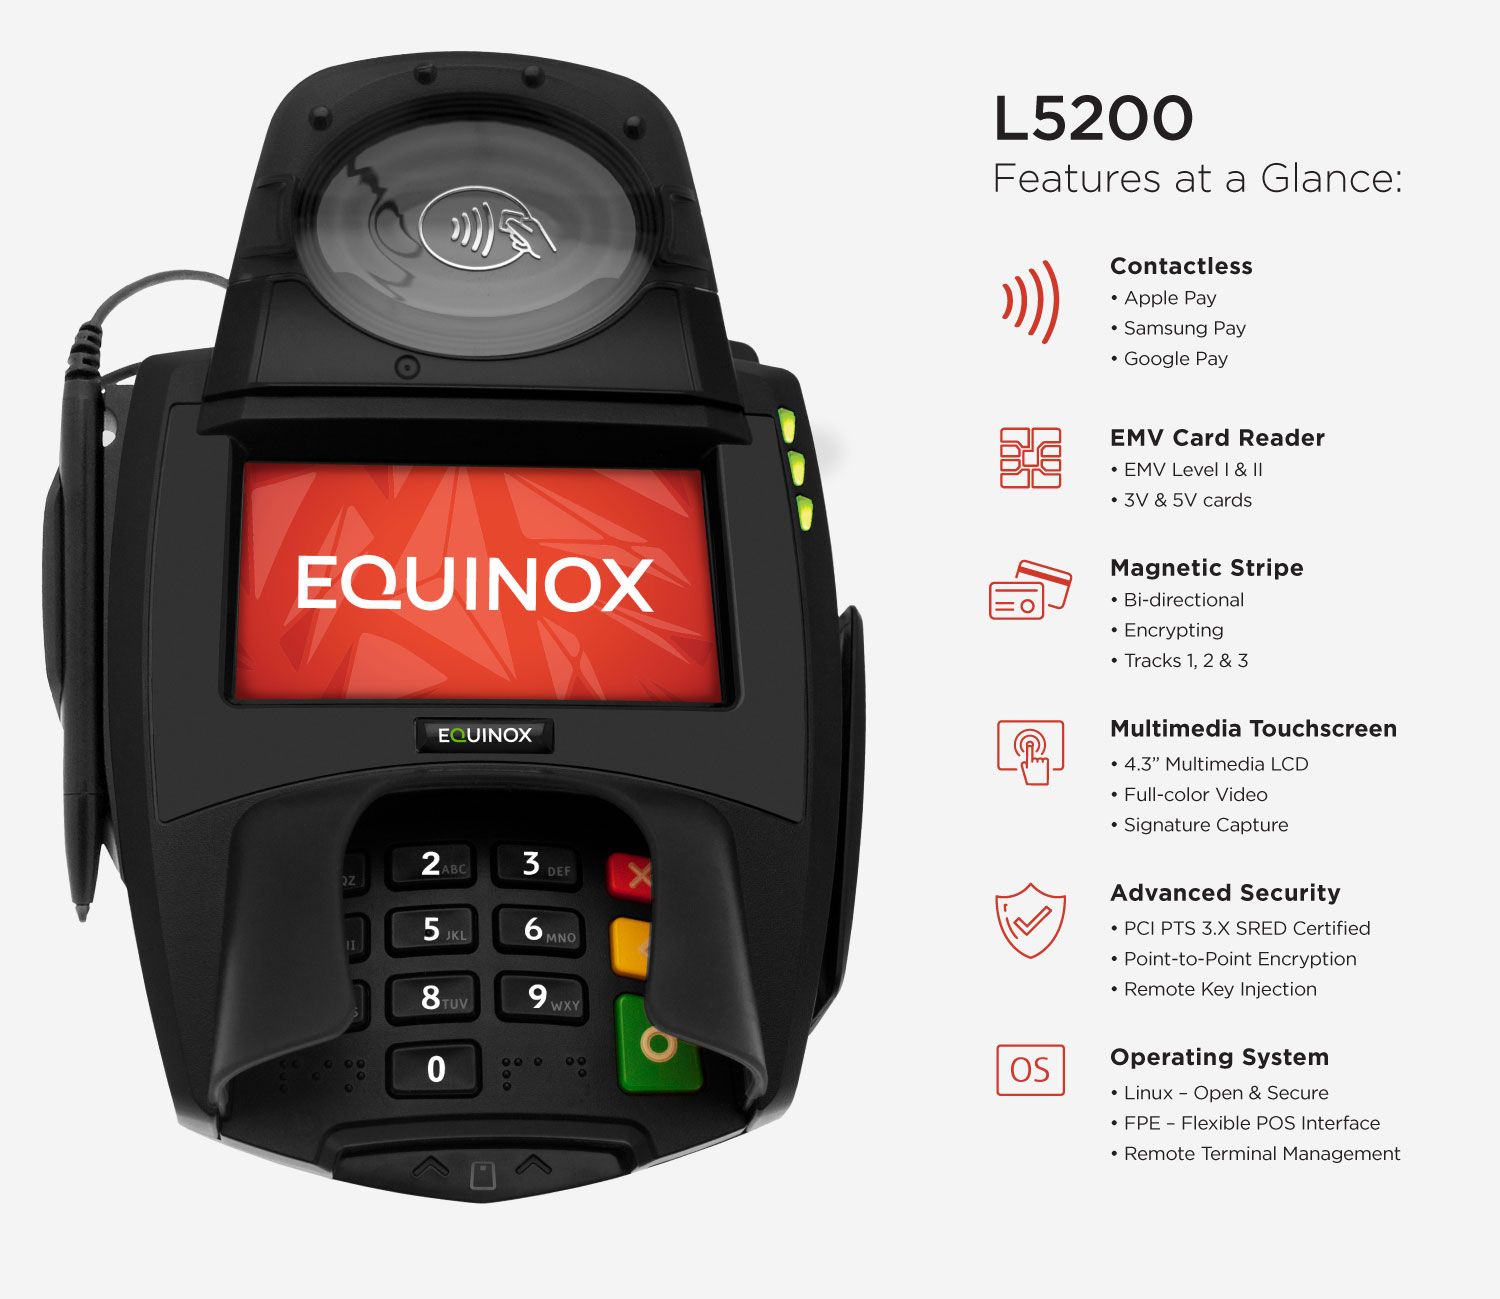 ... signature capture, integrated keypad with side lighting, audio speaker  and audio port. L5300 is EMV/smart card, contactless and NFC capable.